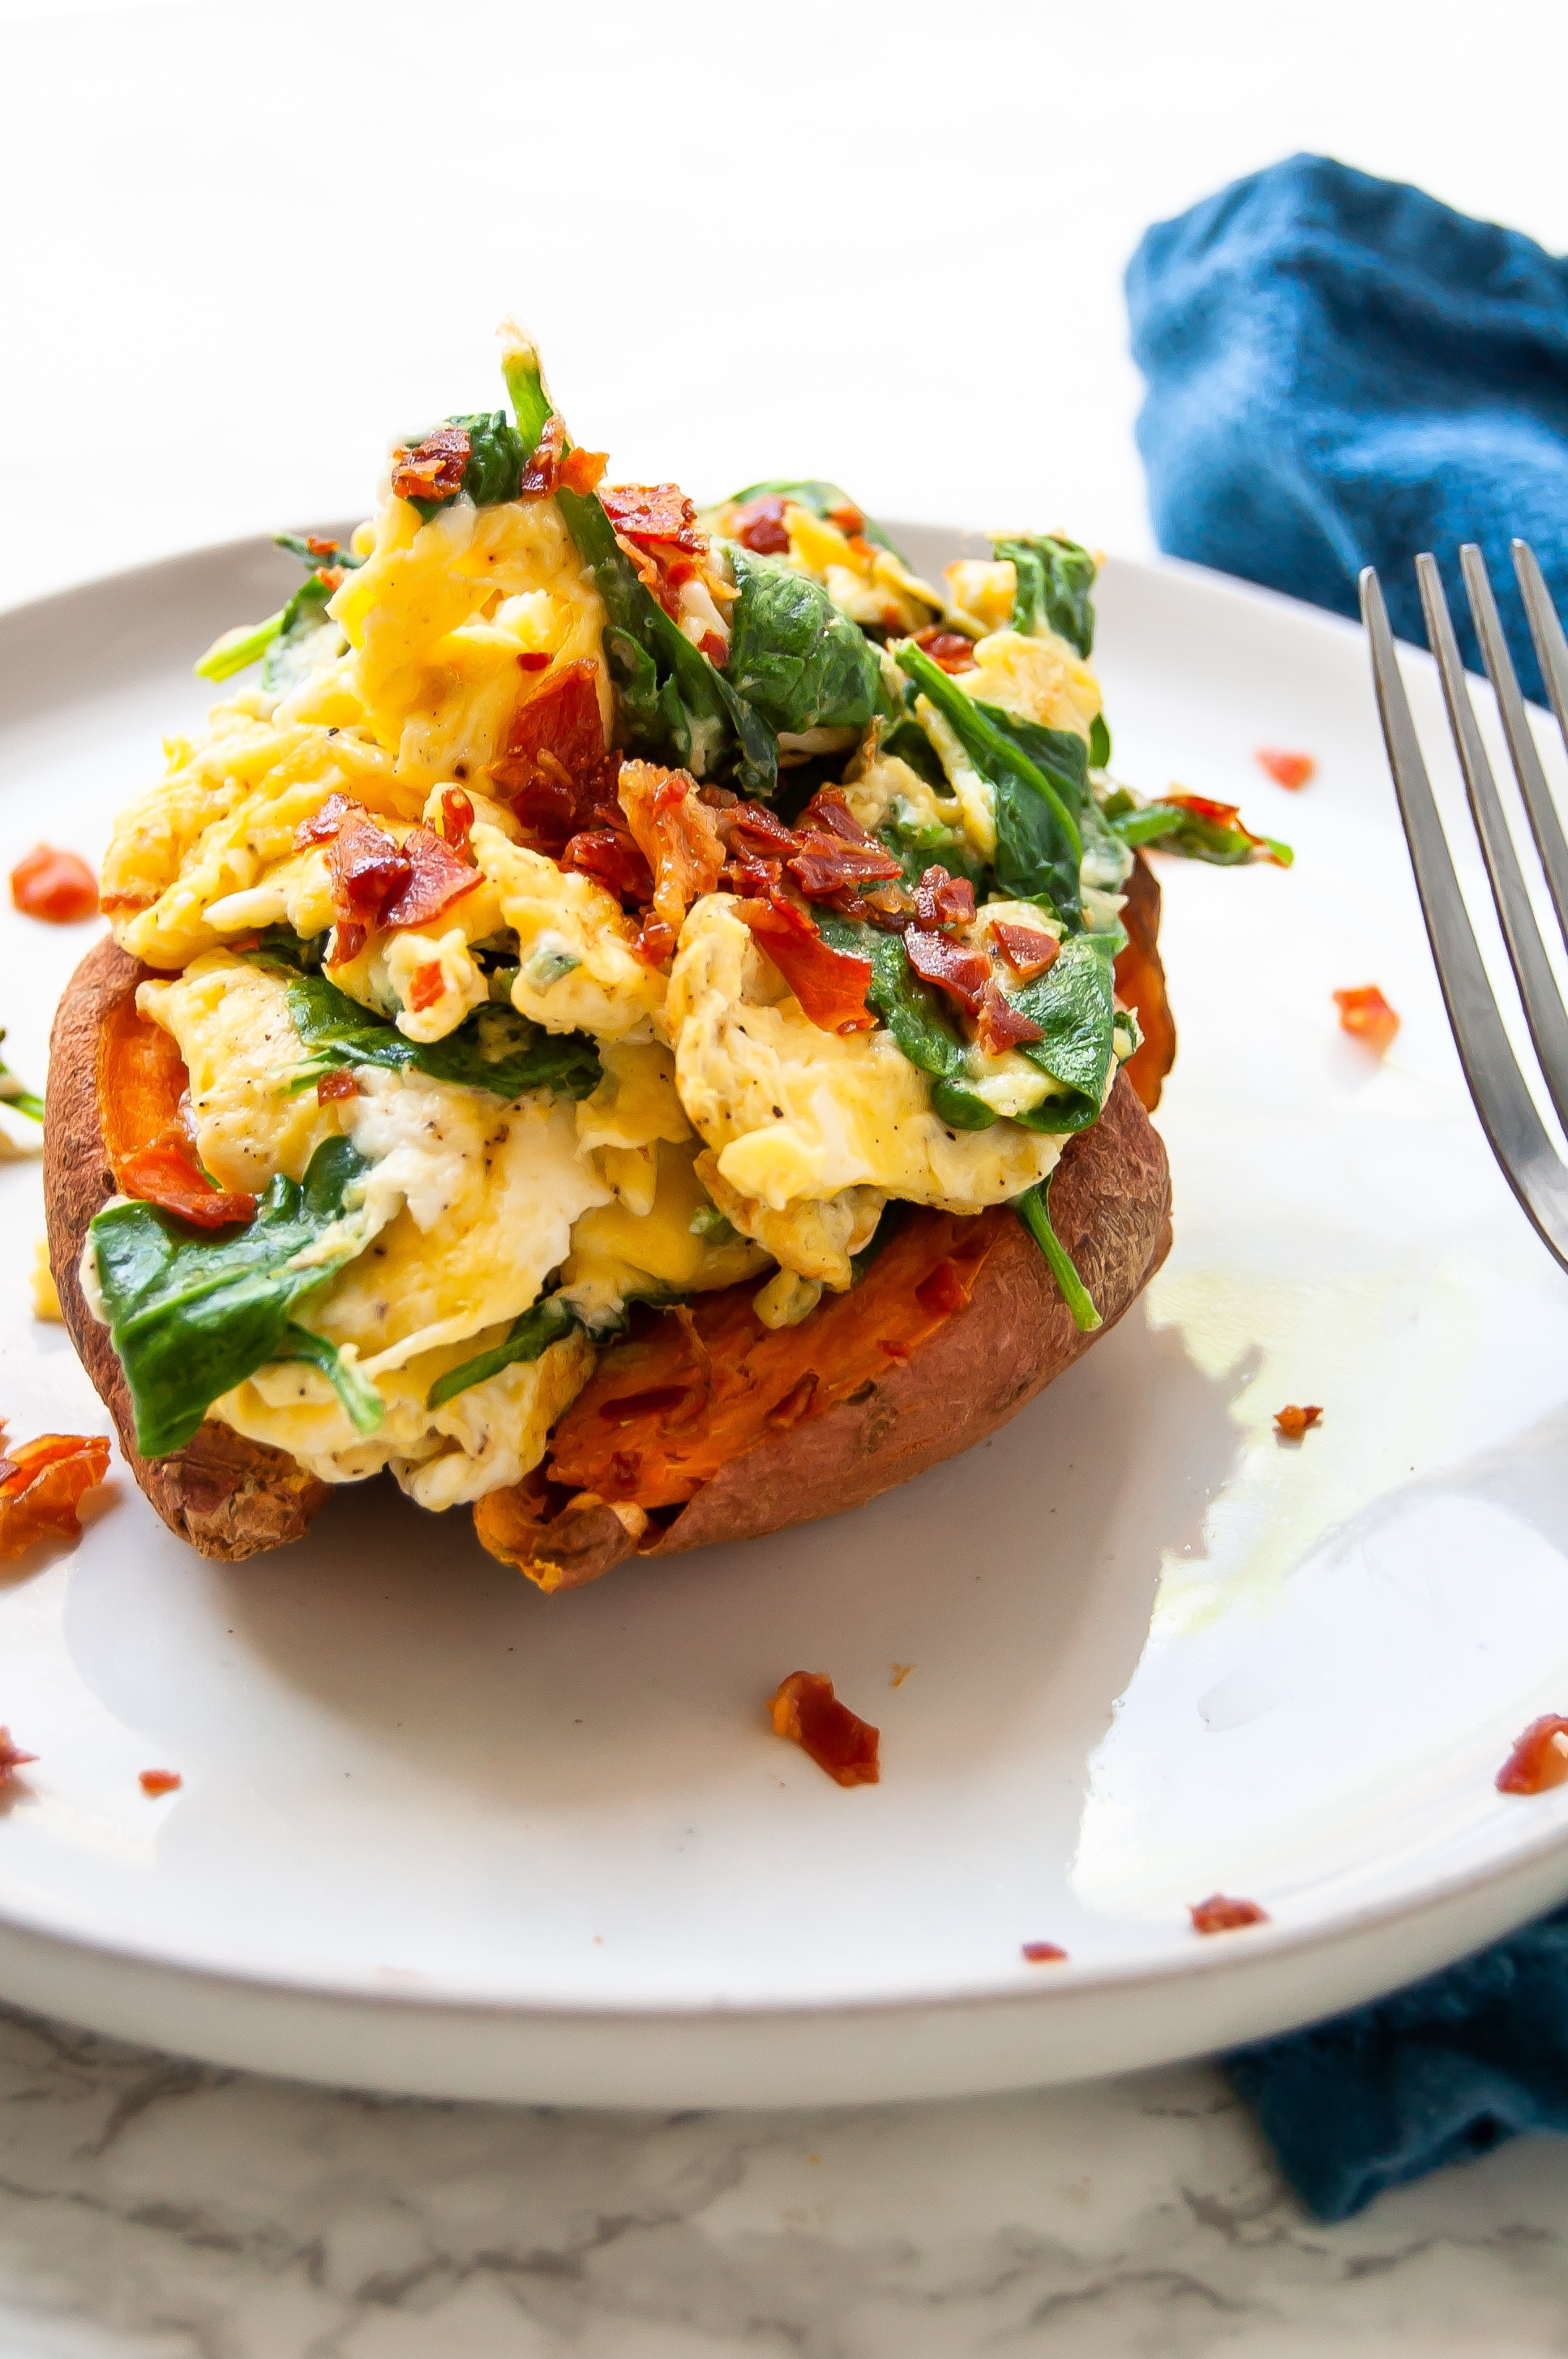 A breakfast stuffed sweet potato makes a delicious, simple, balanced, 5-minute healthy breakfast!